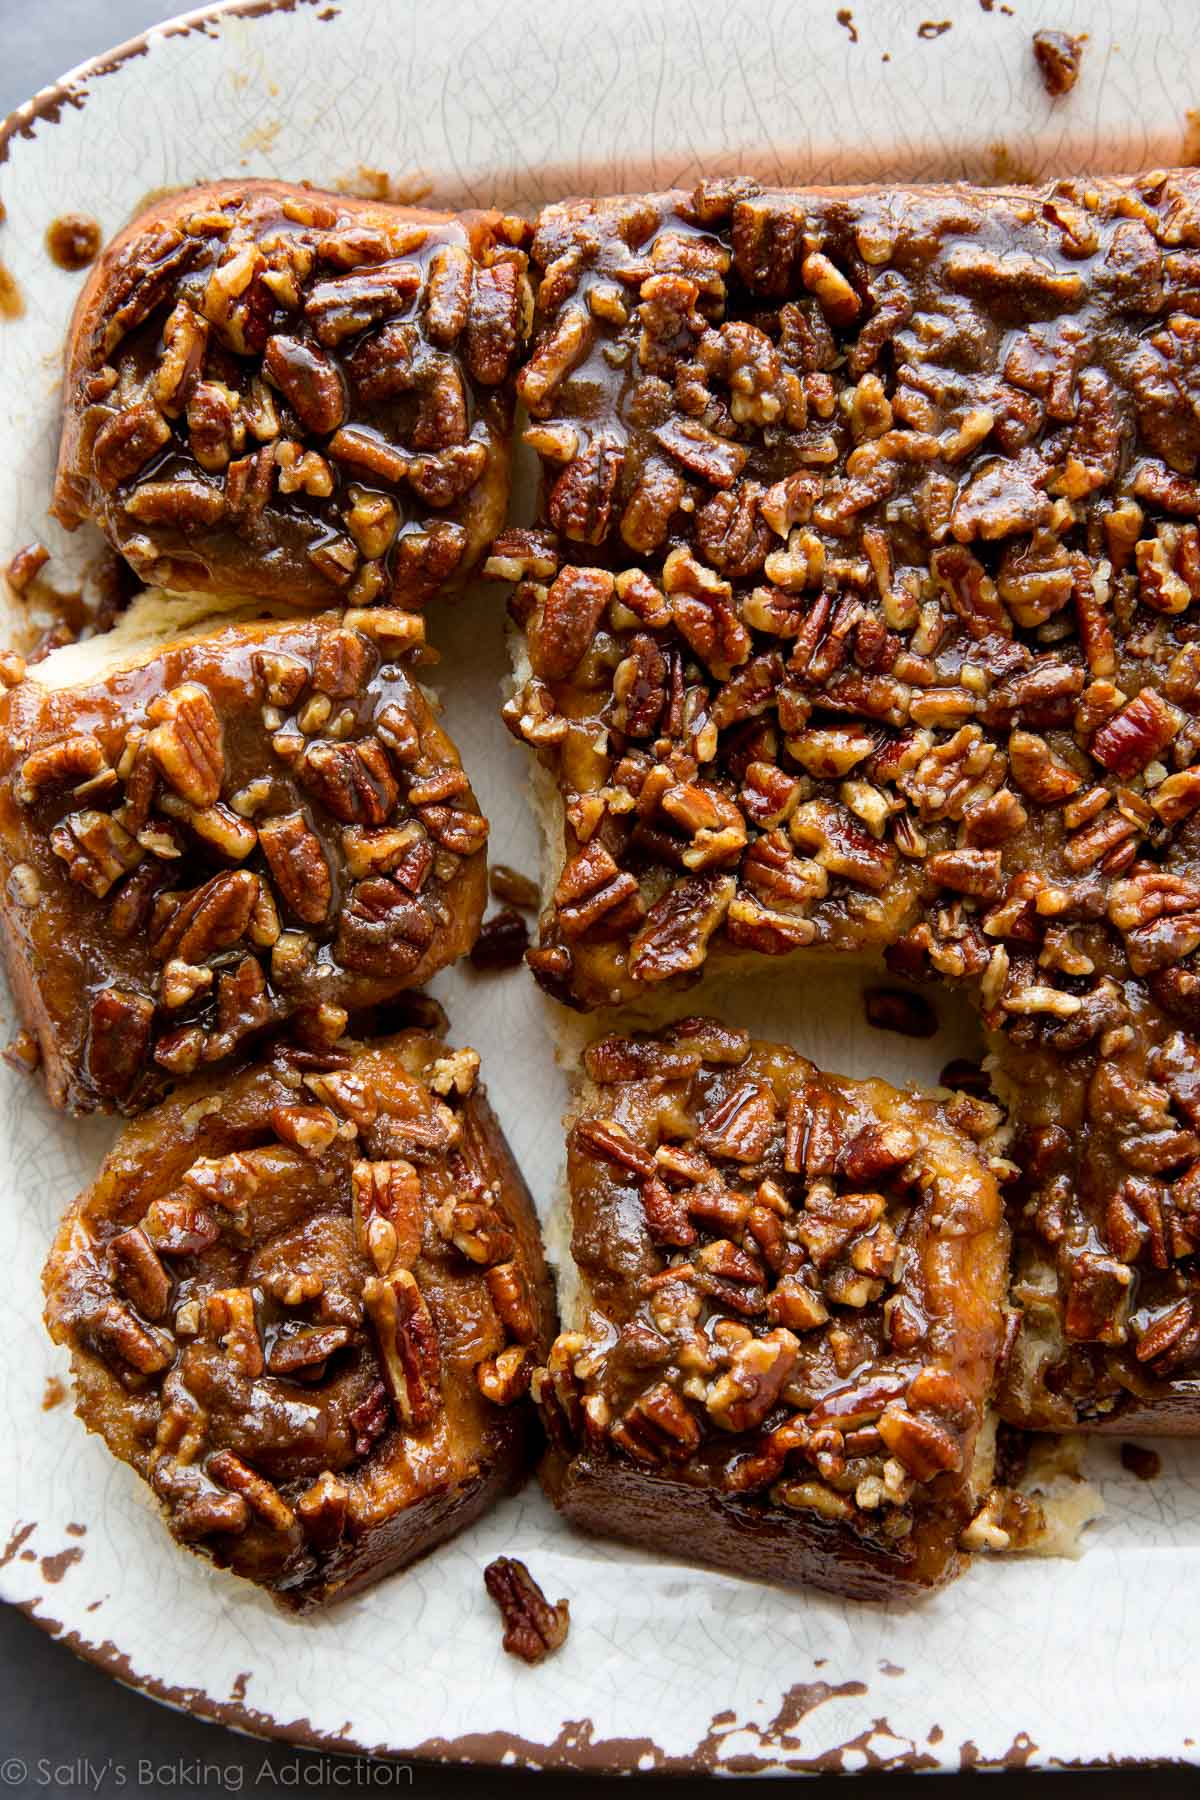 Breakfast and brunch have never been more indulgent and delicious than with these make-ahead maple pecan sticky buns! Recipe on sallysbakingaddiction.com